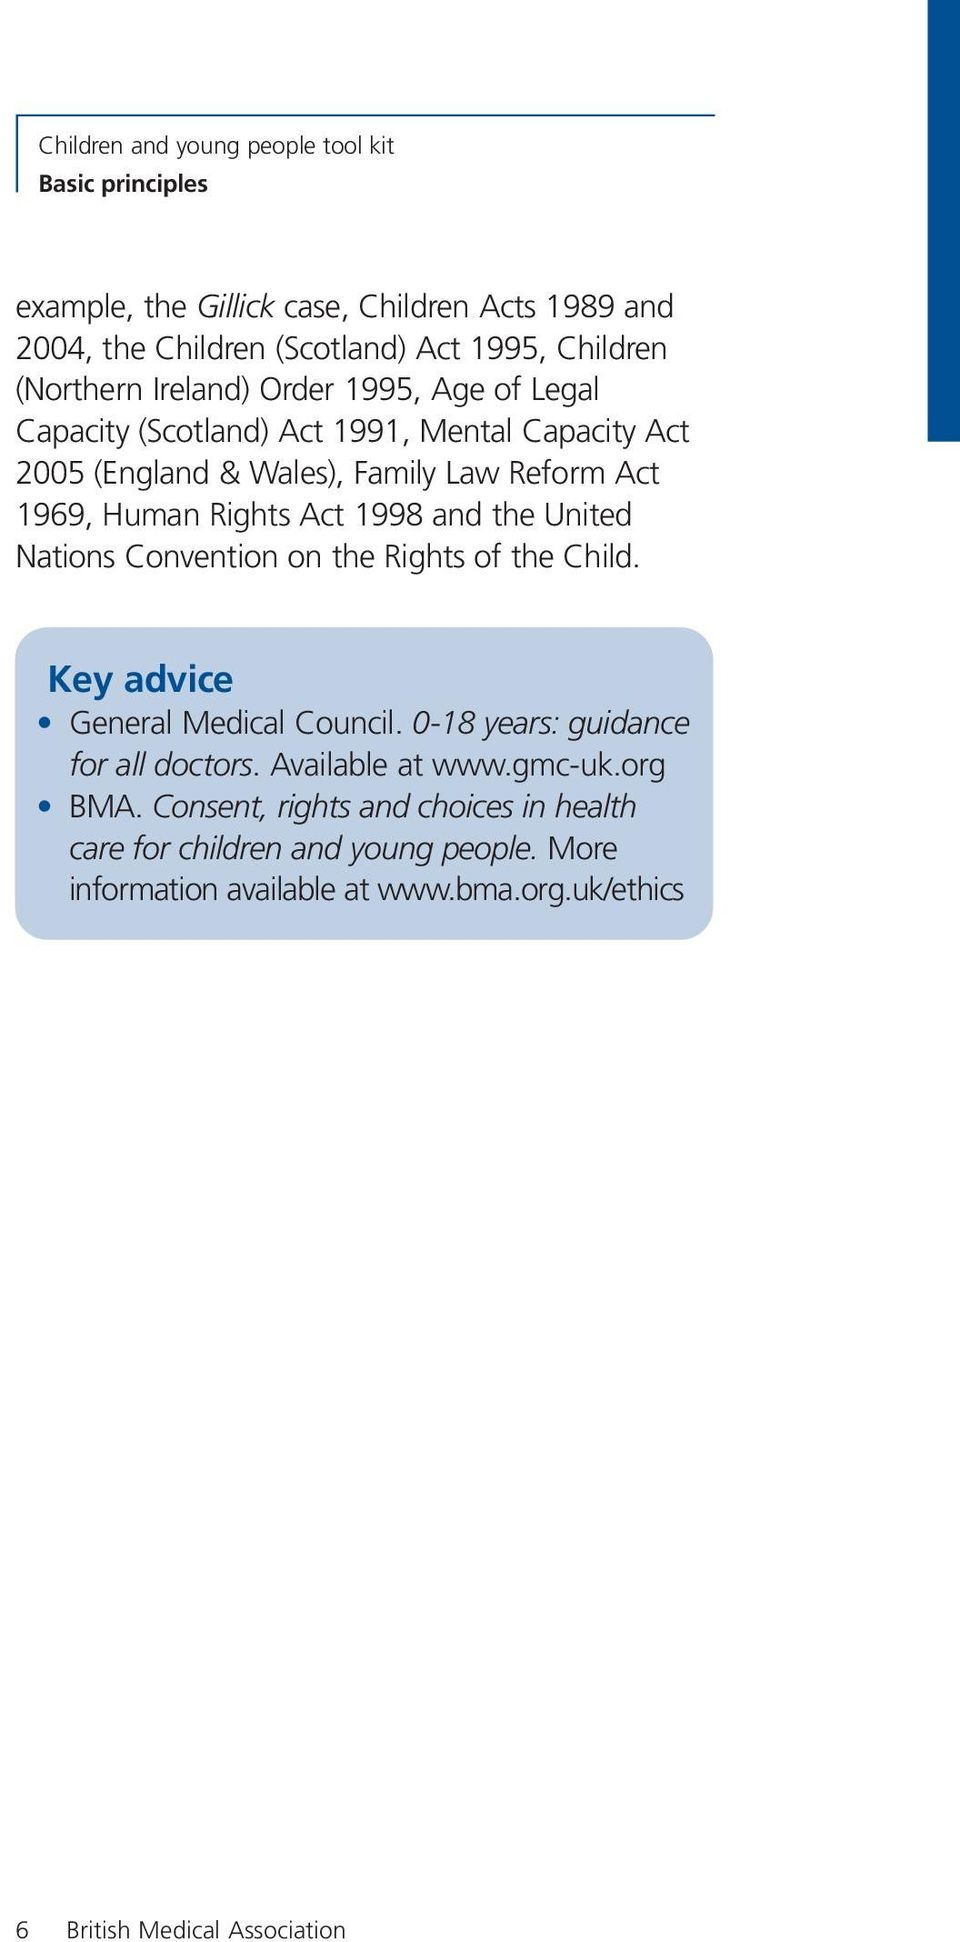 Nations Convention on the Rights of the Child. Key advice General Medical Council. 0-18 years: guidance for all doctors. Available at www.gmc-uk.